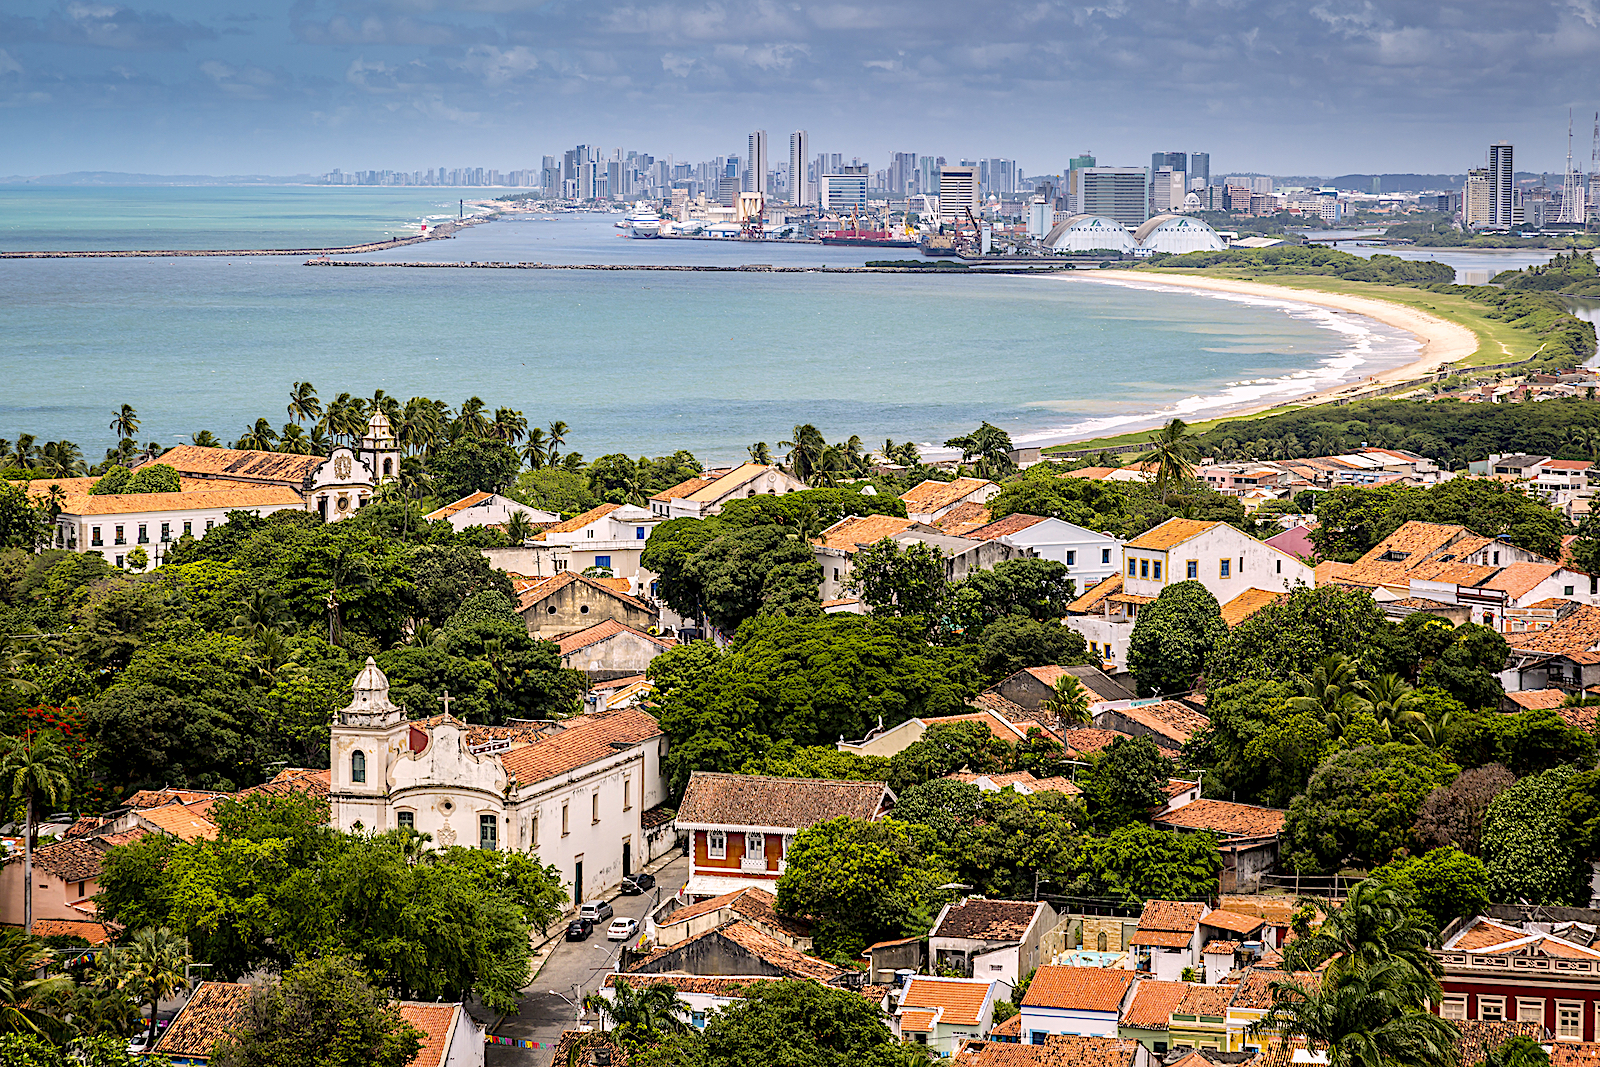 Colonial town of Olinda (just north of Recife) showcases Brazilian history